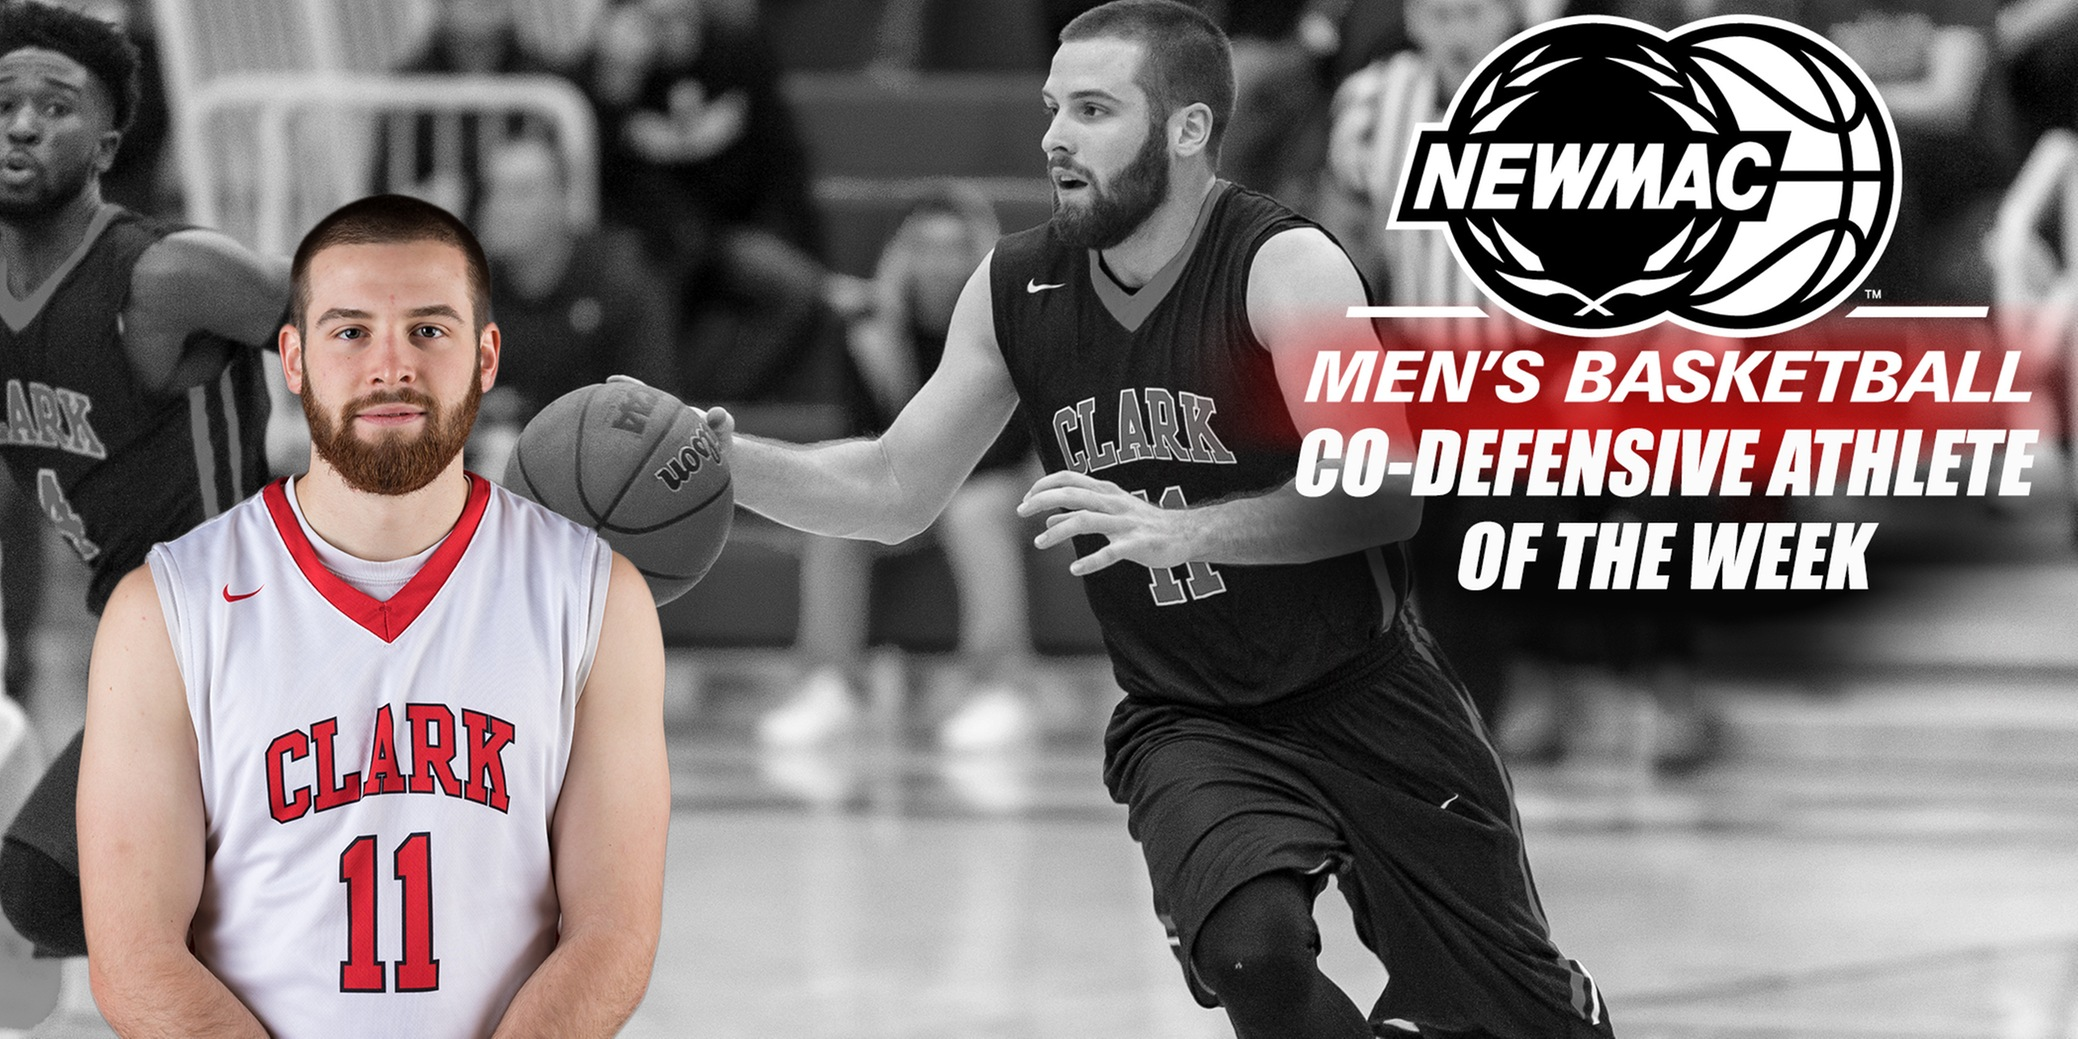 Kittredge Tabbed NEWMAC Men's Basketball Co-Defensive Athlete of the Week